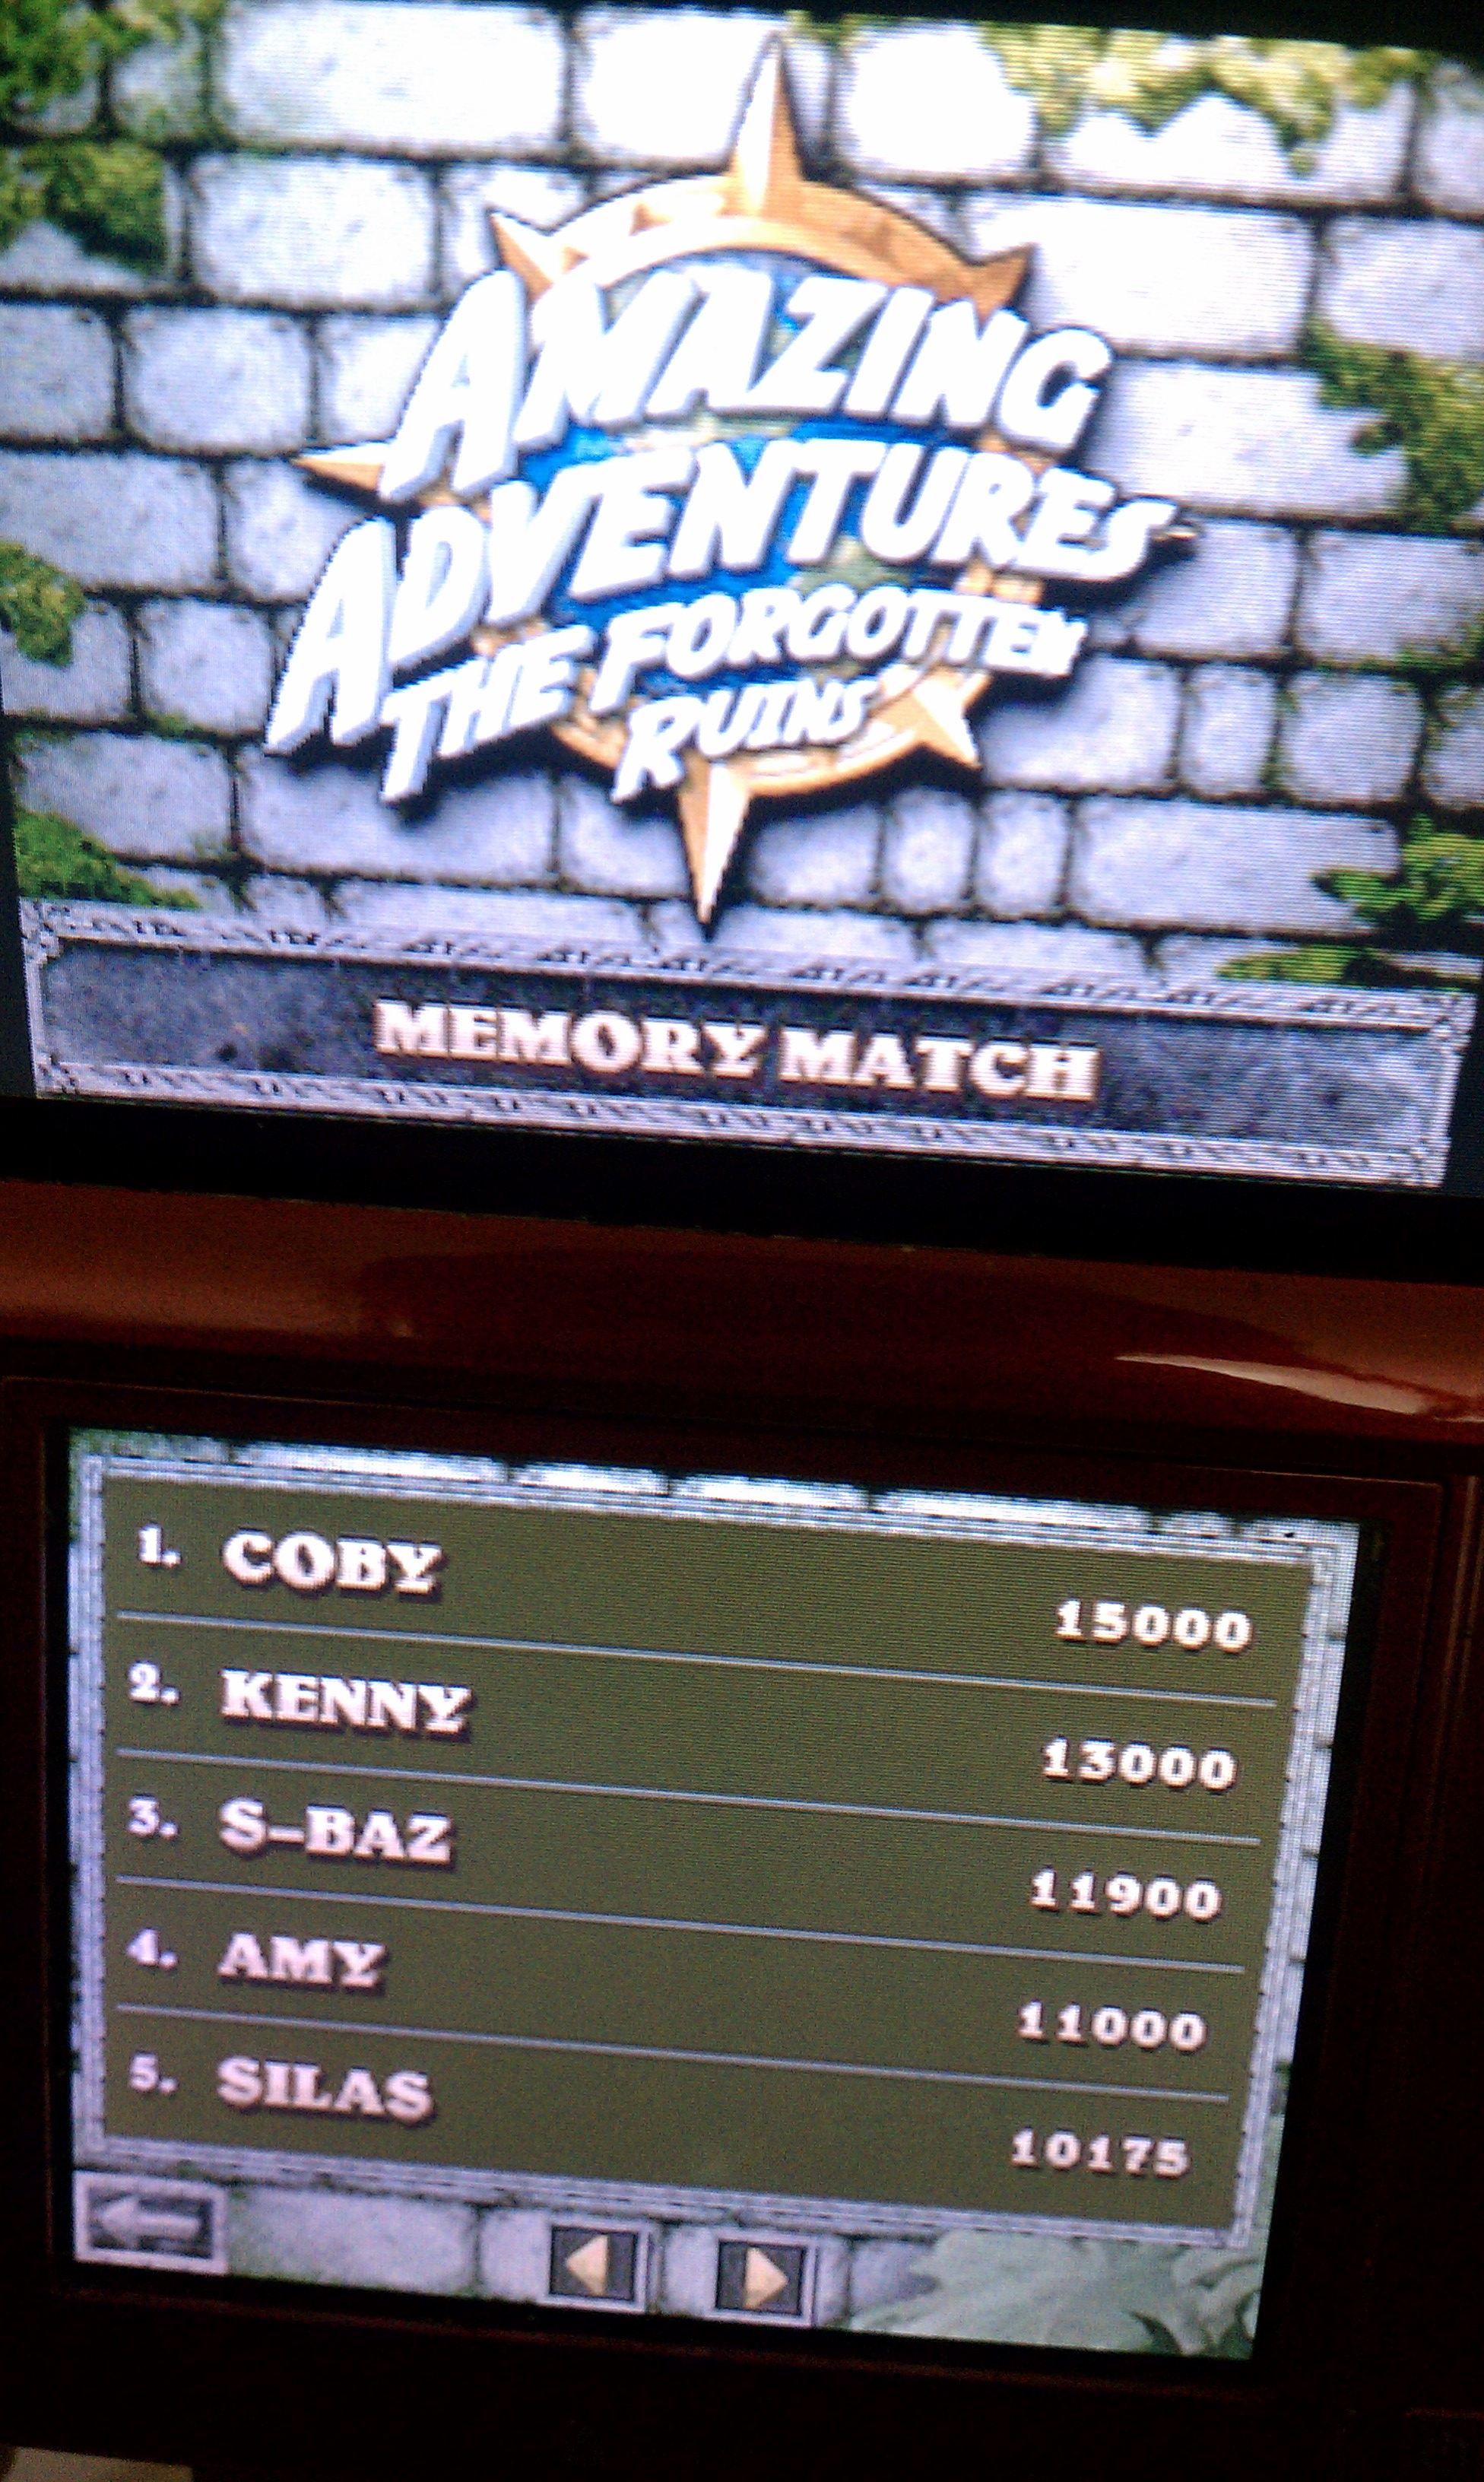 BAZ: Amazing Adventures: The Forgotten Ruins: Memory Match (Nintendo DS) 11,900 points on 2020-01-18 19:09:49